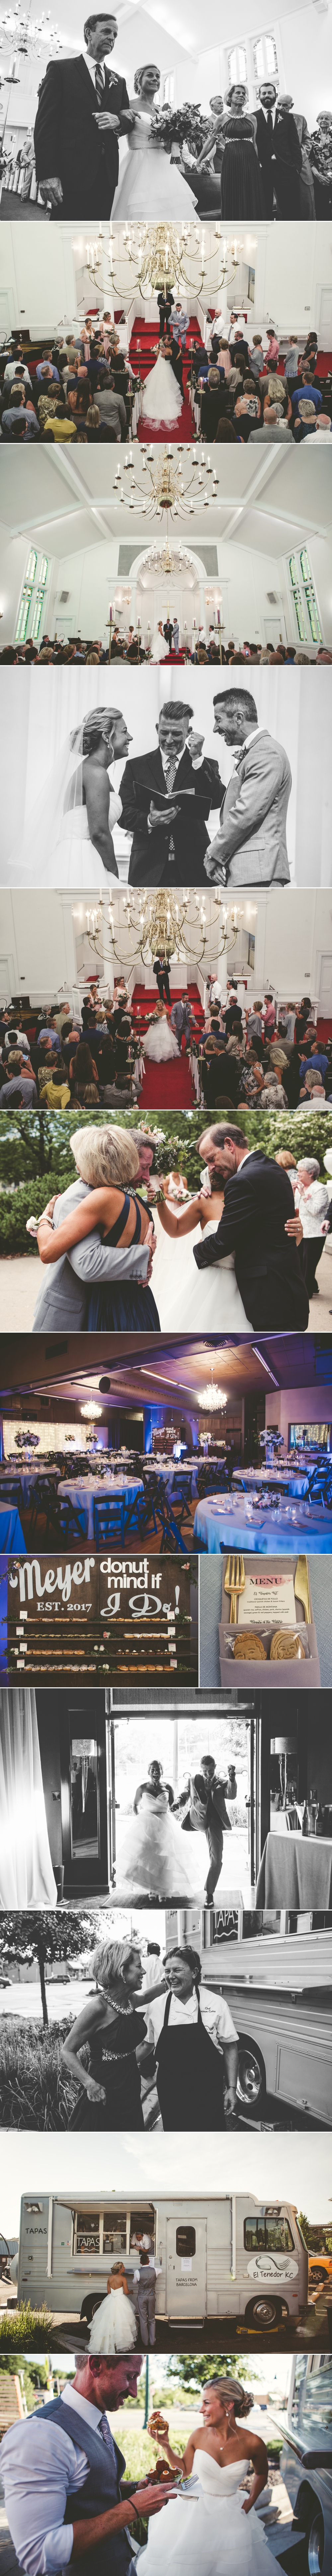 jason_domingues_photography_best_kansas_city_photographer_kc_weddings_melange_dance_mission_ks0003.jpg